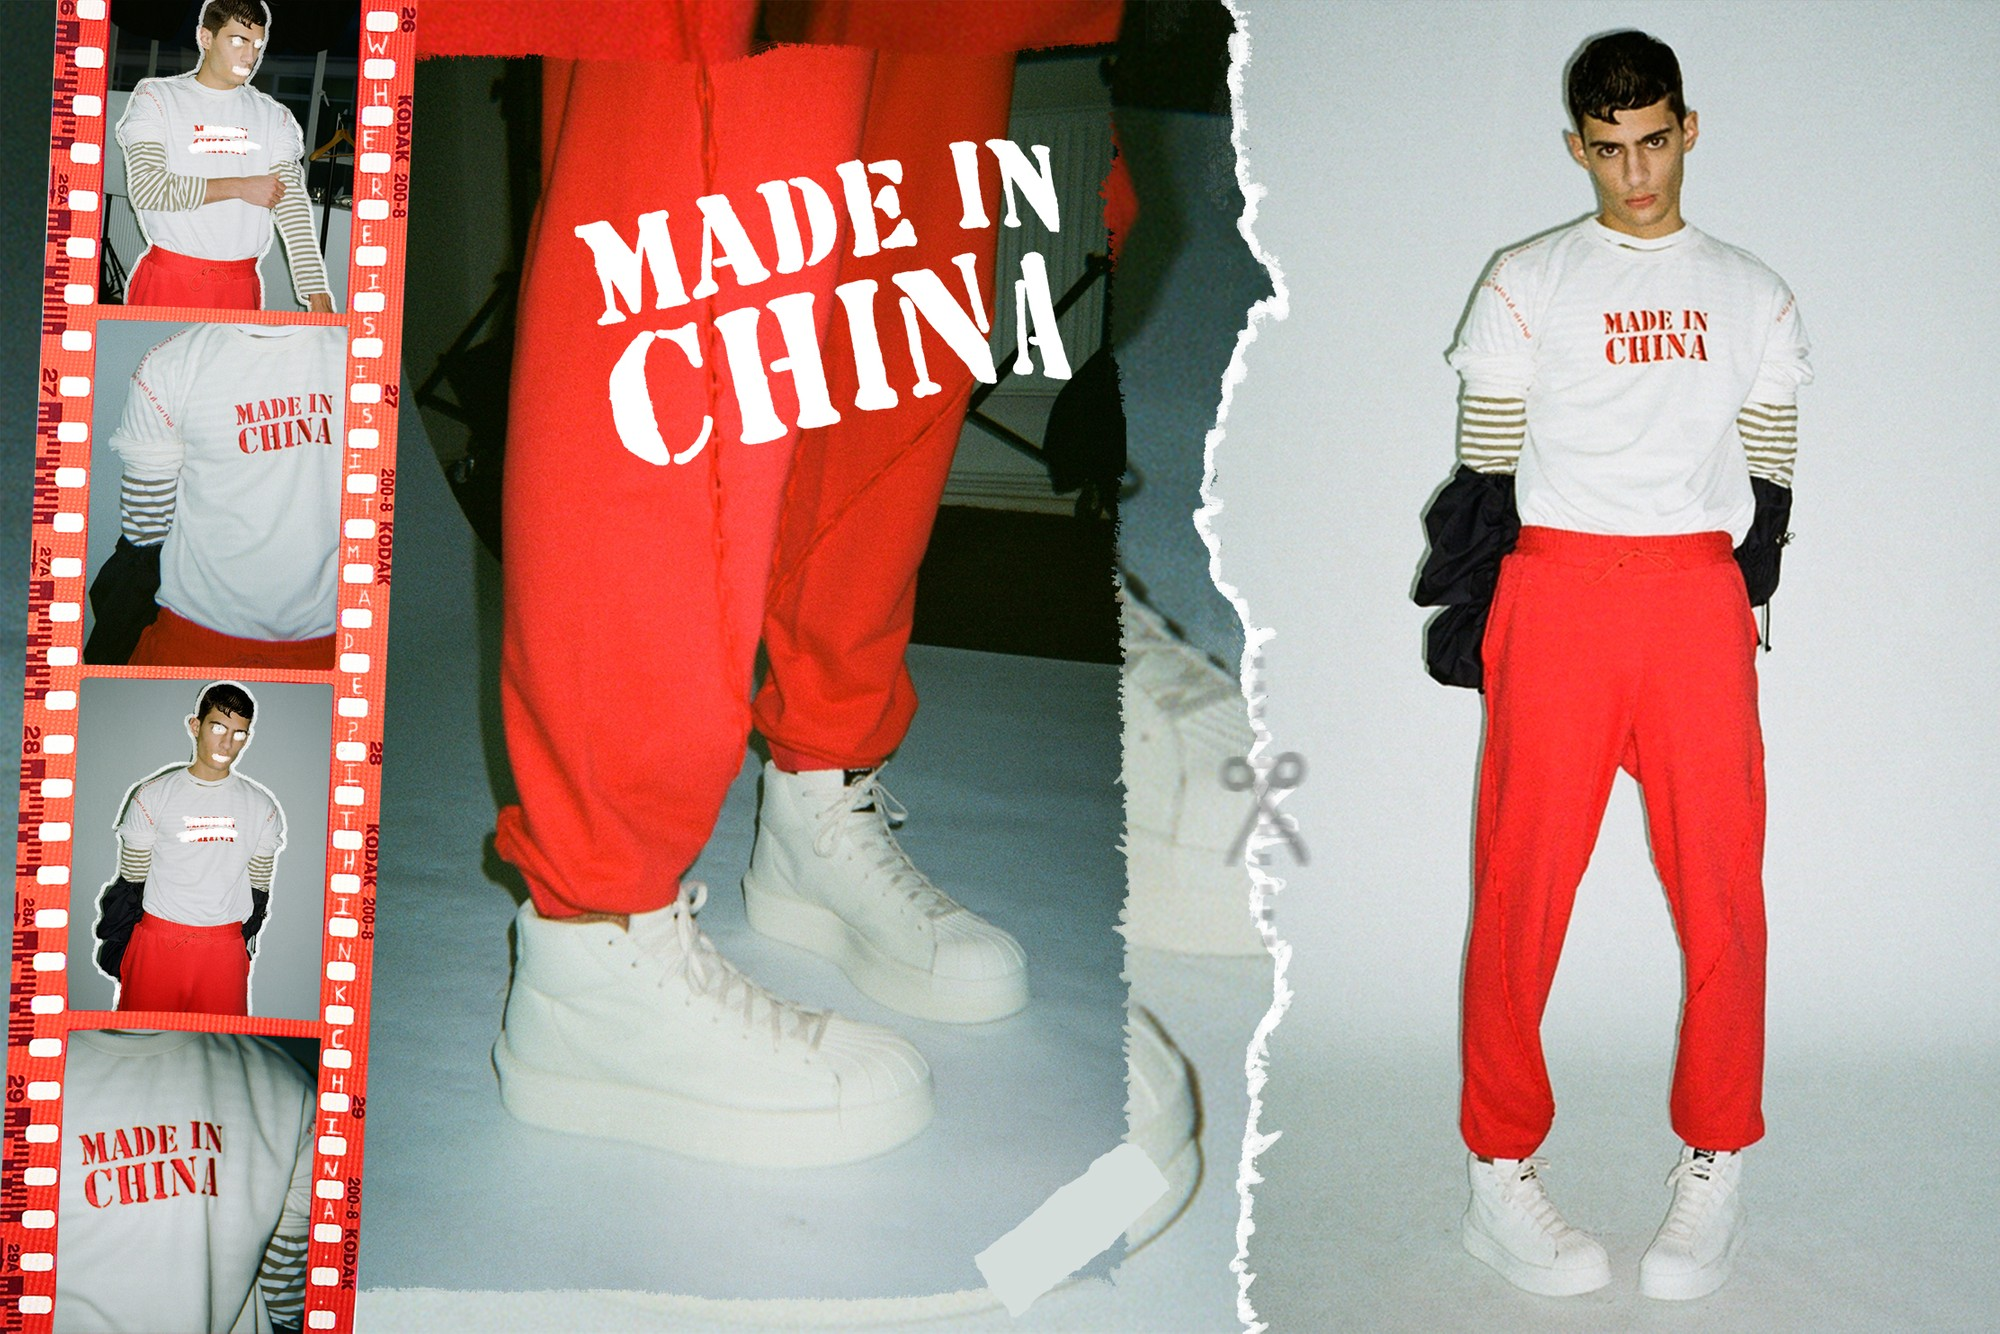 Feng Chen Wang Editorial Feature Nike Levi's Trucker Jacket Jordan Brand FlyKnit Virgil Abloh Off-White